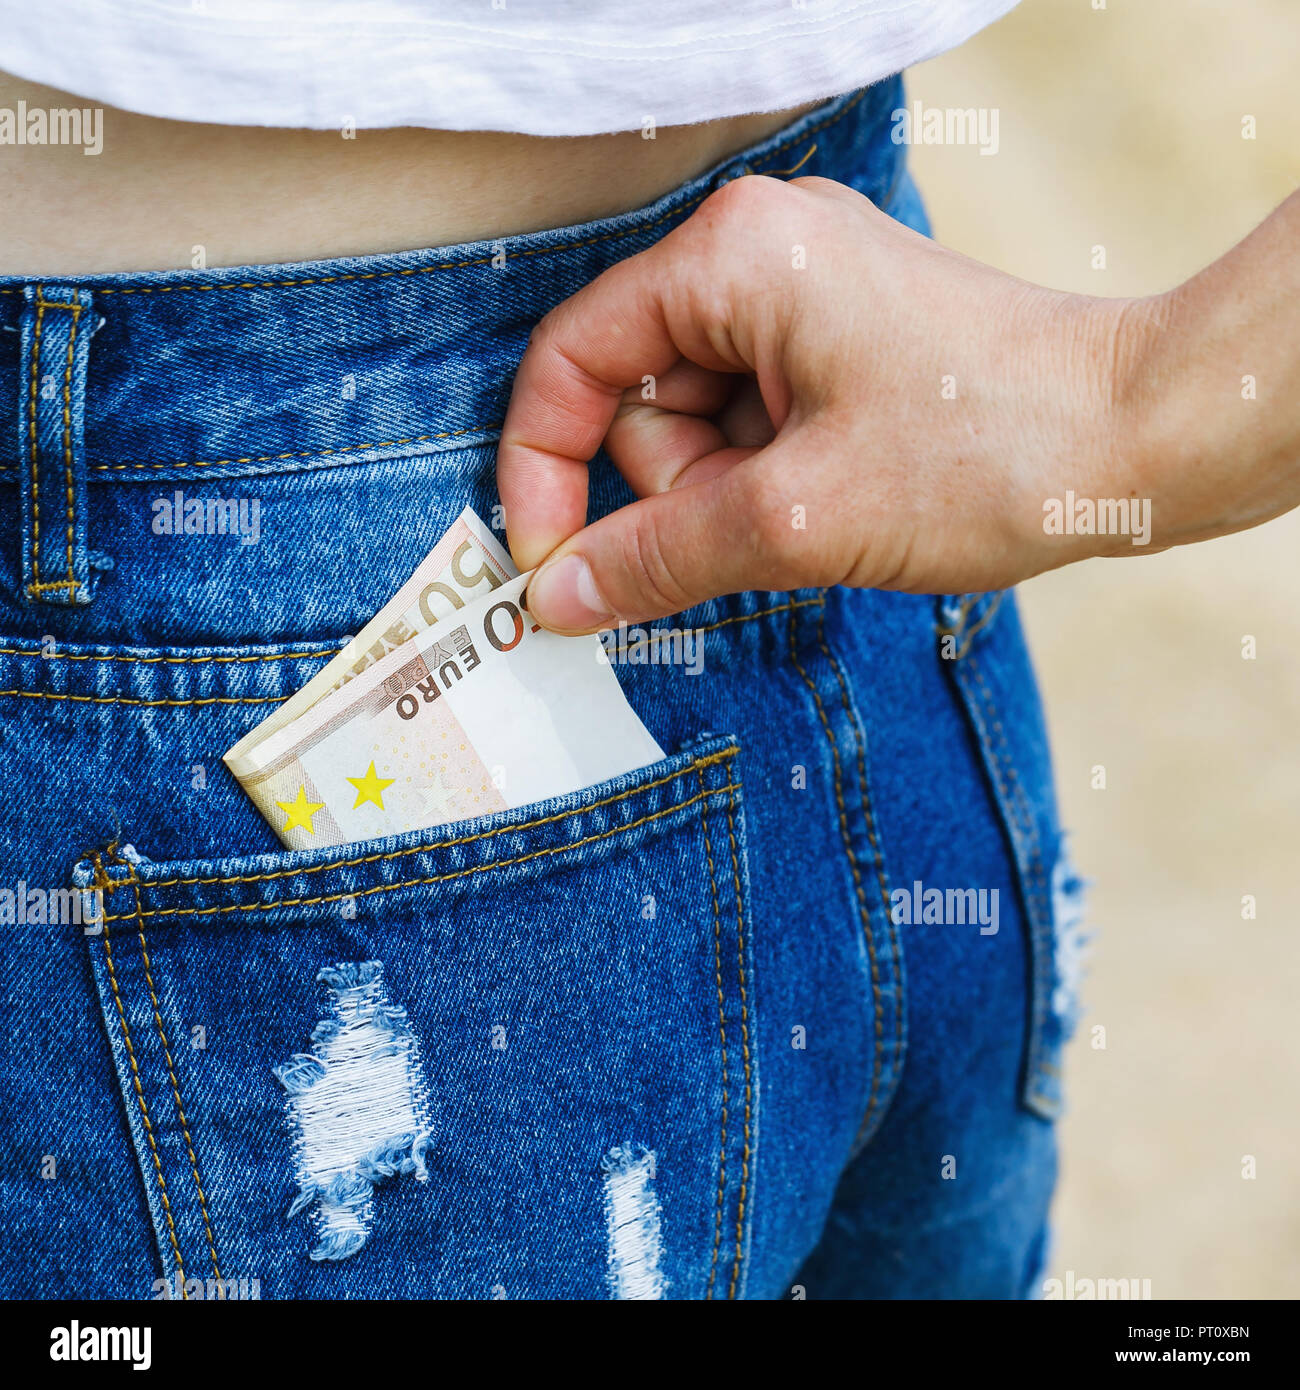 Theft of currency from pocket of jeans at not attentive tourists - Stock Image